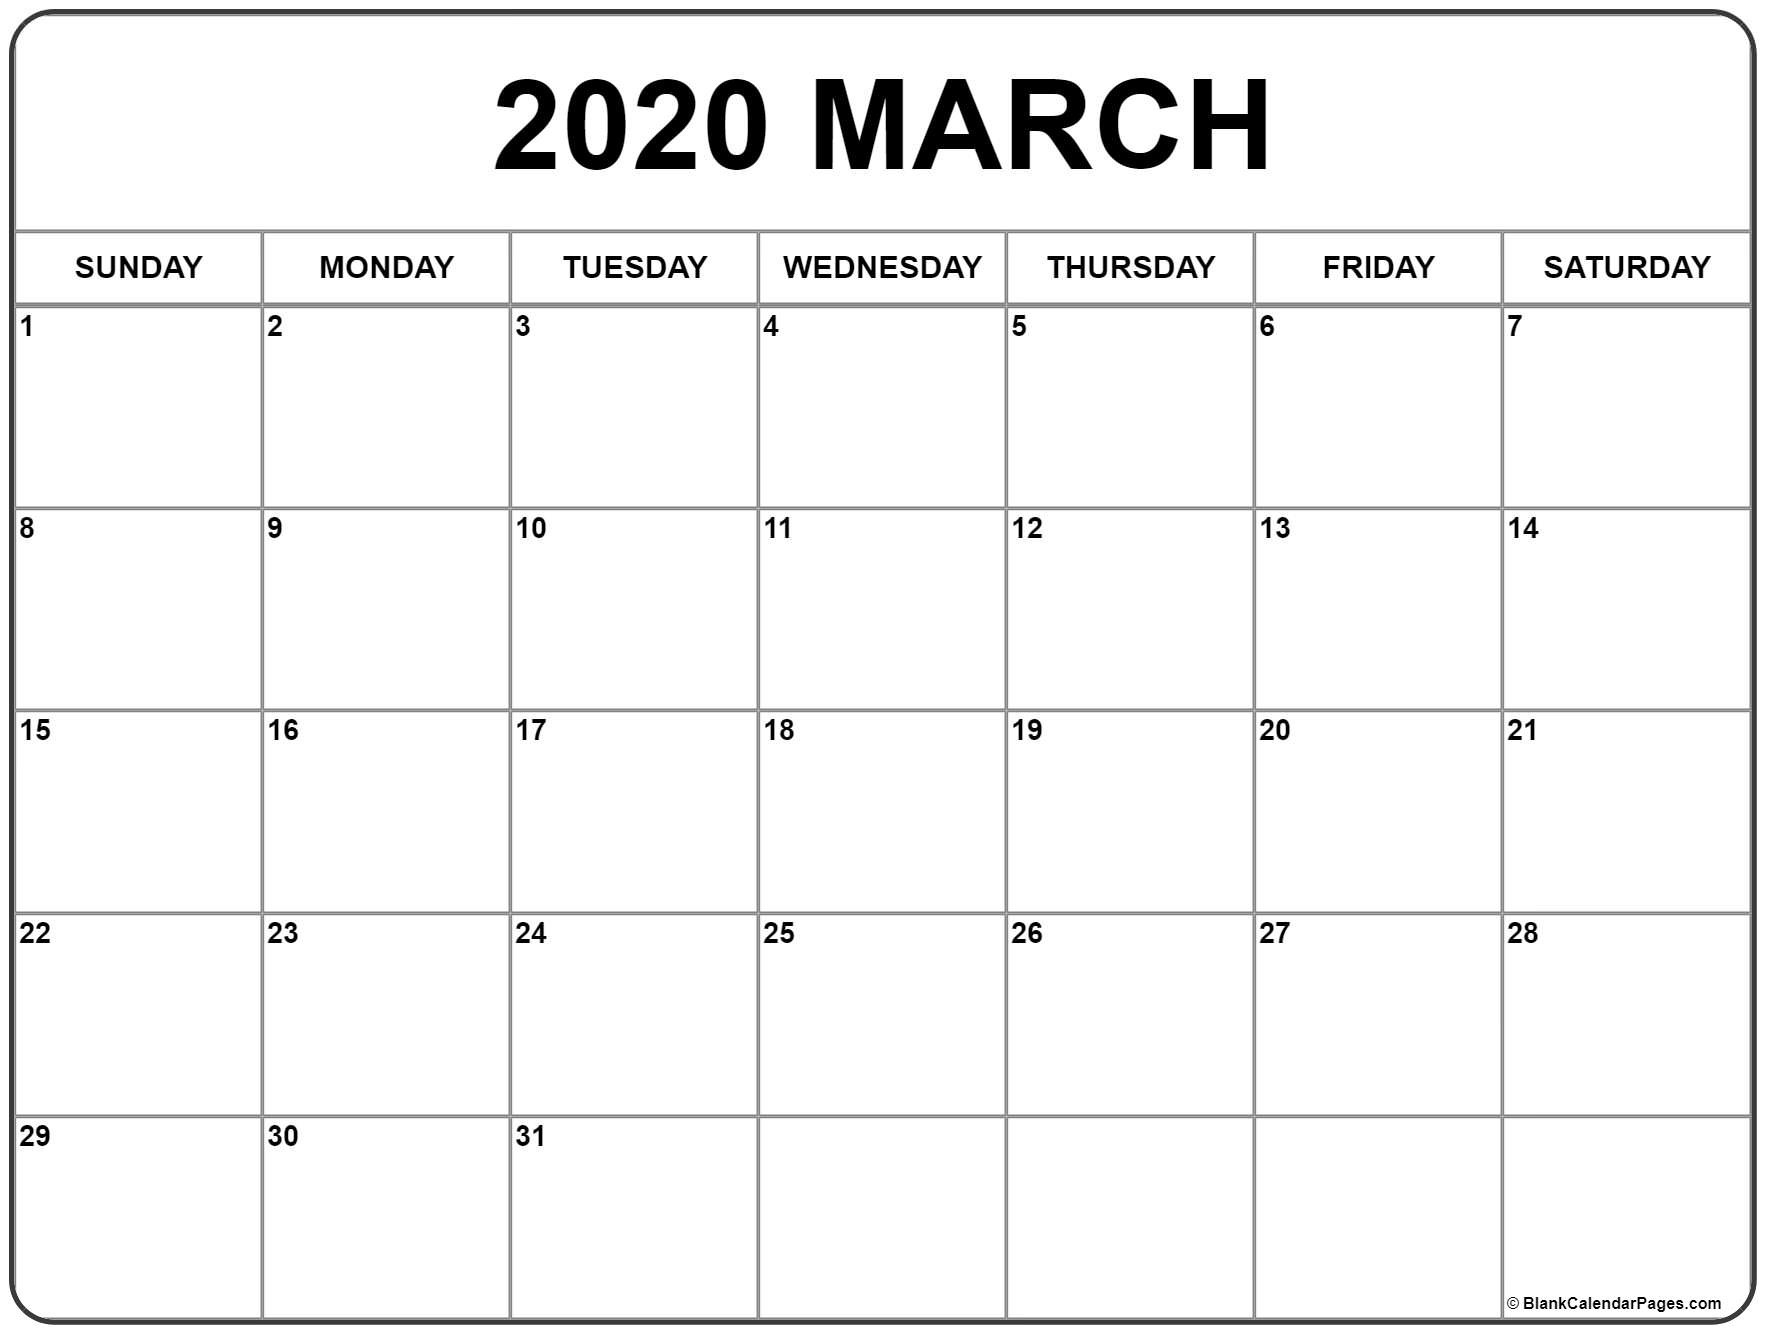 March 2020 Calendar | Free Printable Monthly Calendars  Full Page Calendar Print Out